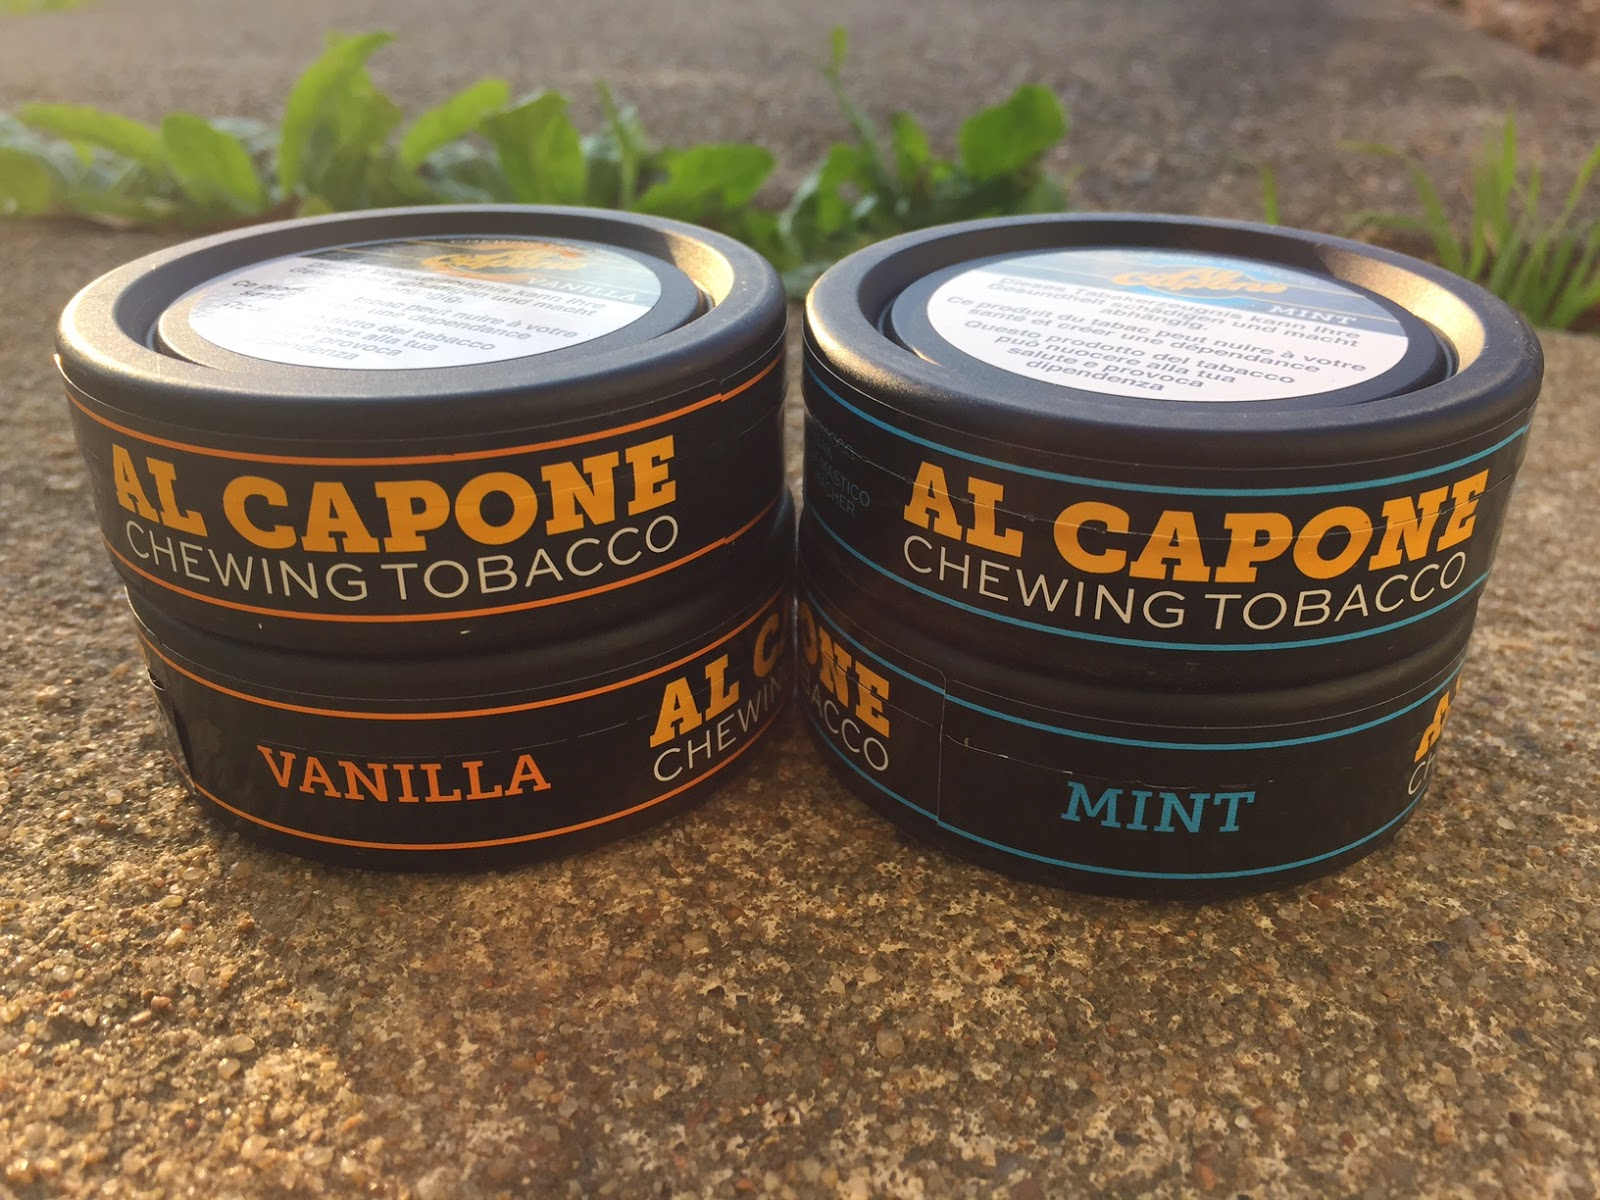 Canadian chewing tobacco brands